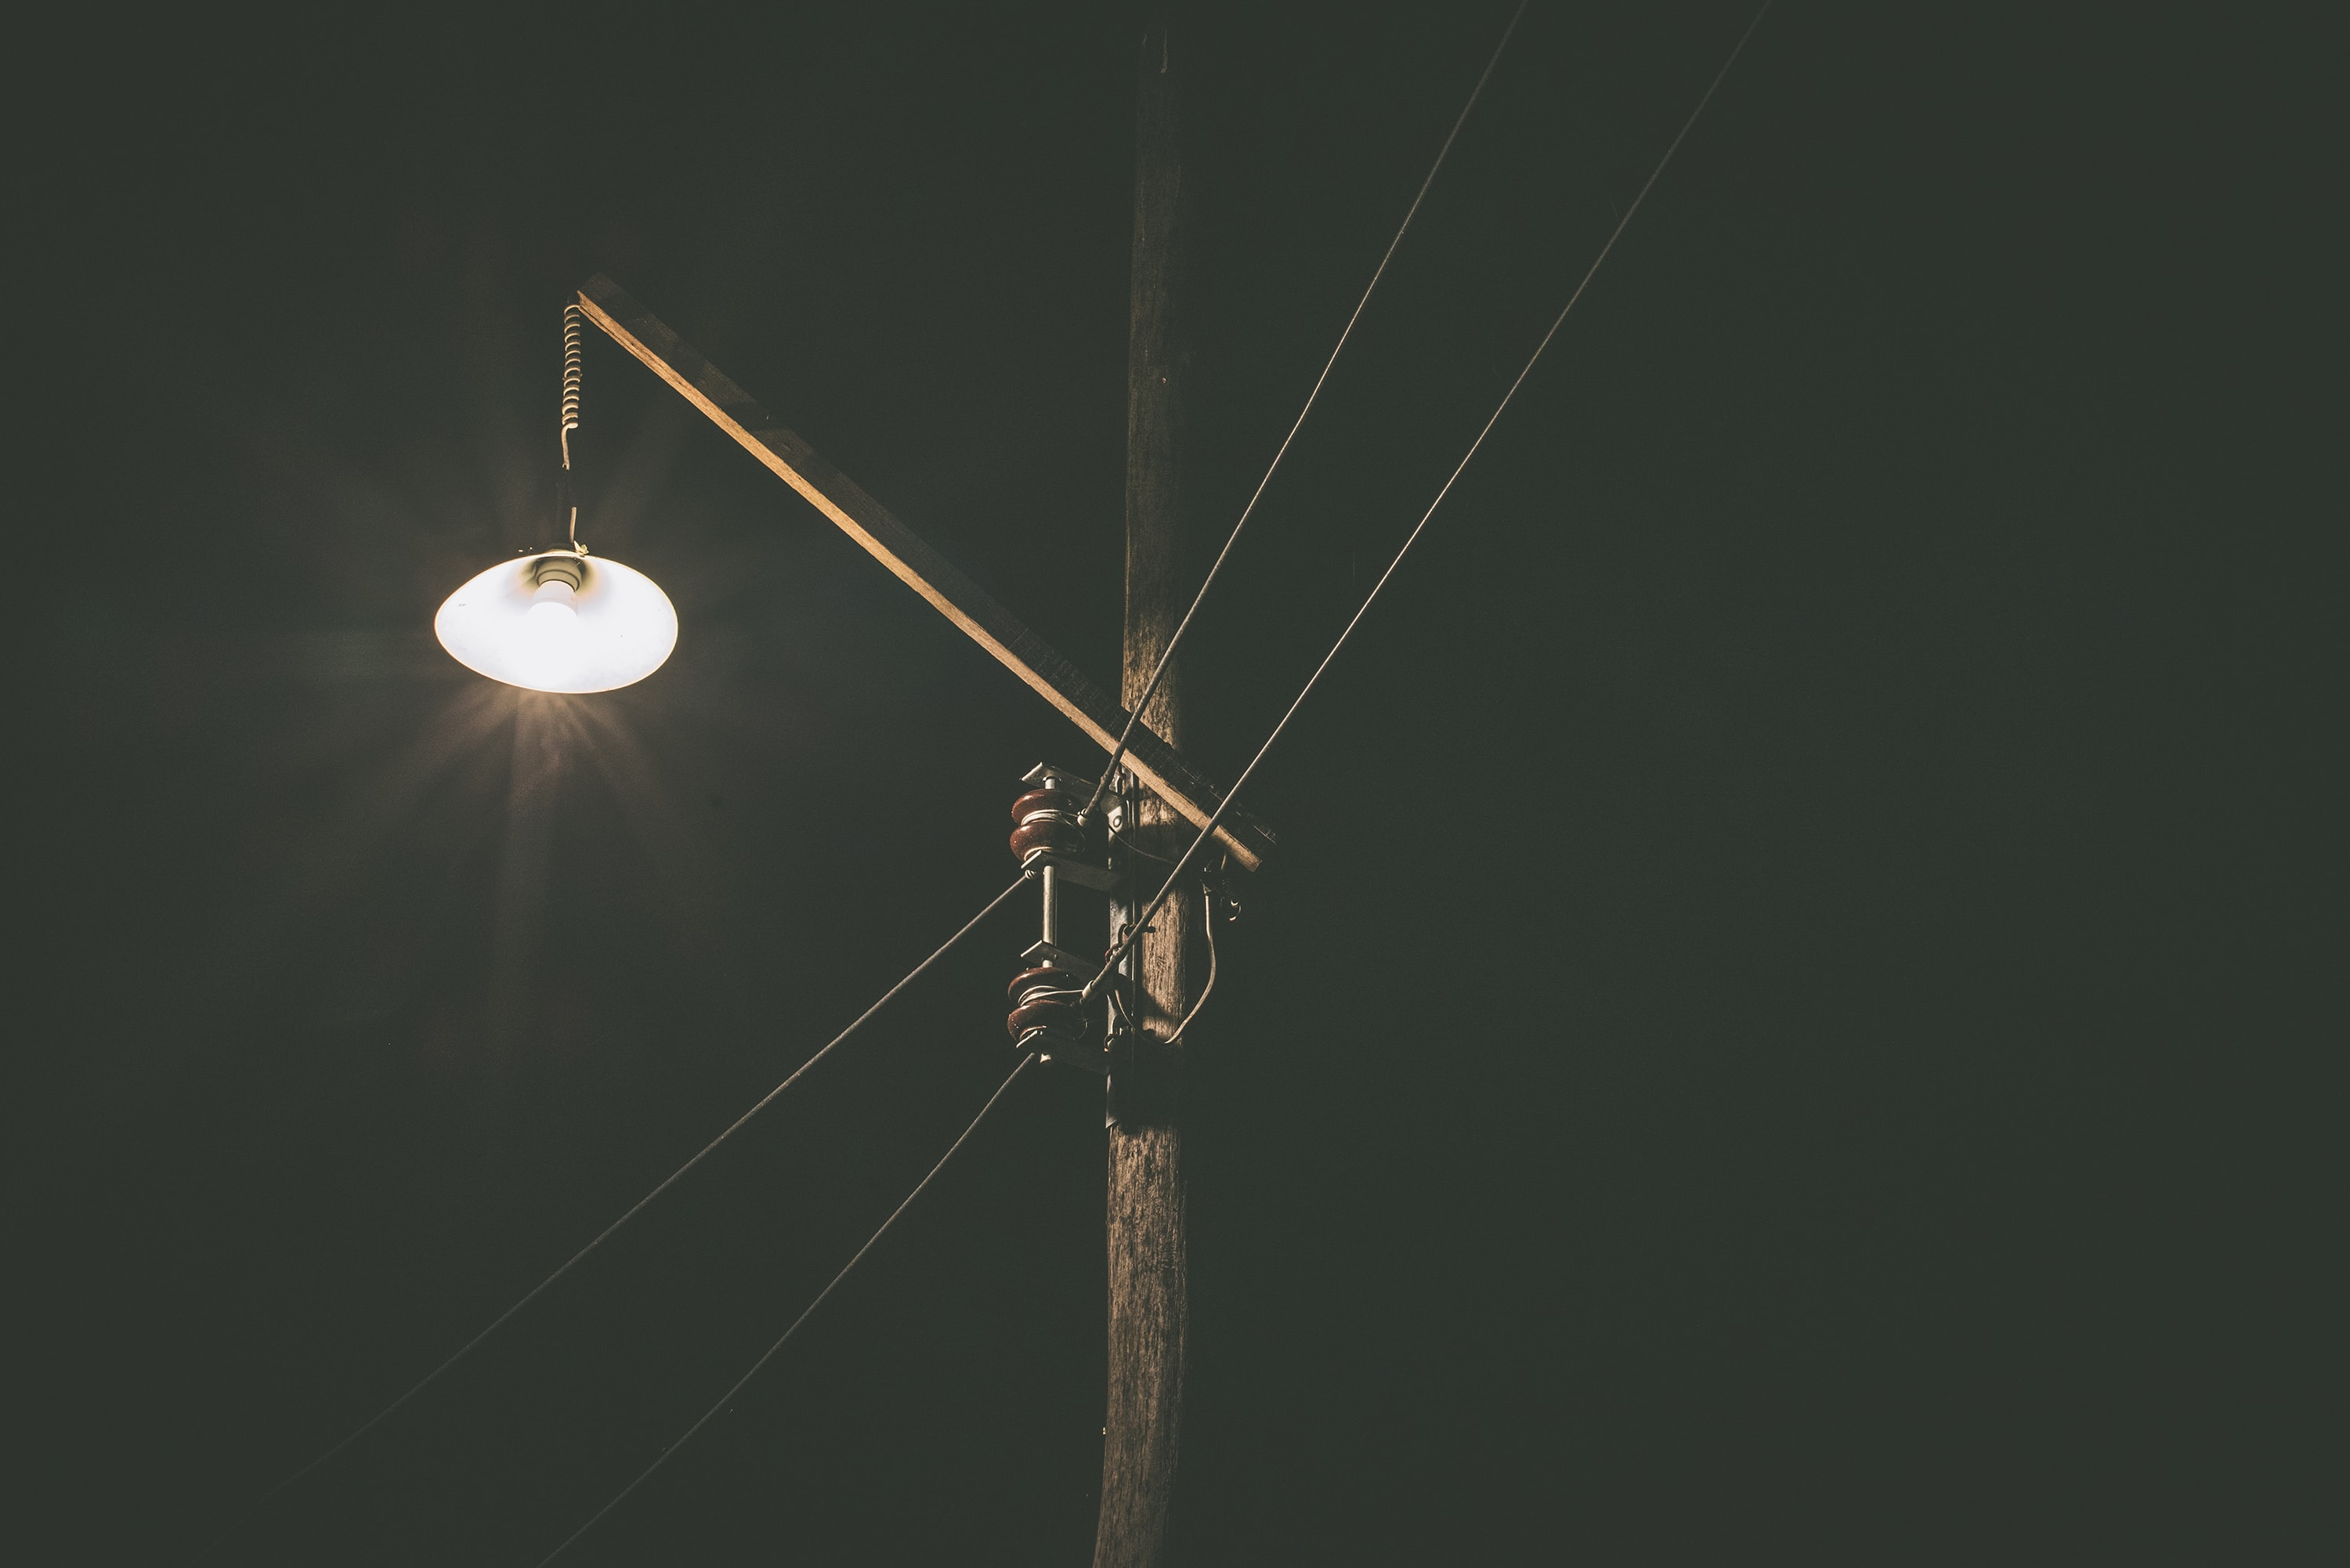 Single street lamp lit up by a power line at night